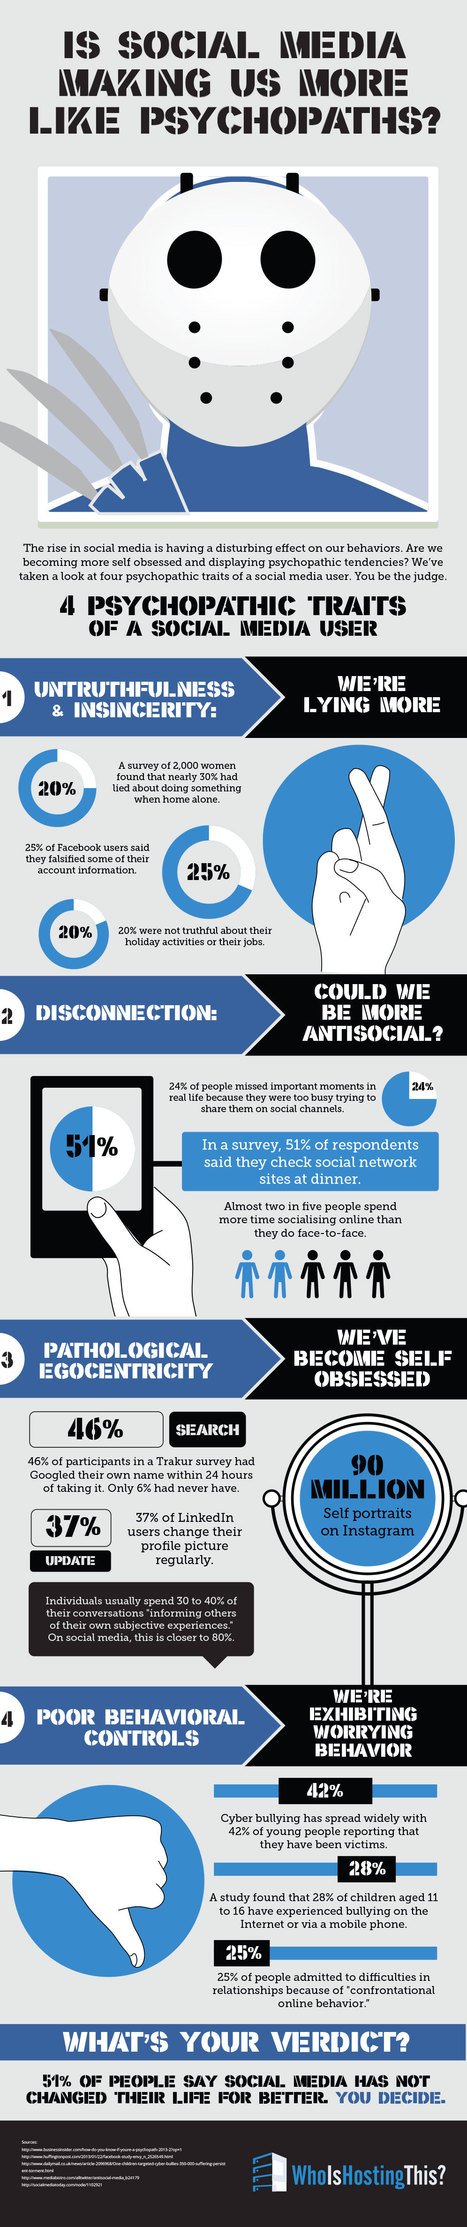 [INFOGRAPHIC] Is Social Media Turning Us Into Psychopaths? - WhoIsHostingThis | The Marketing Technology Alert | Scoop.it